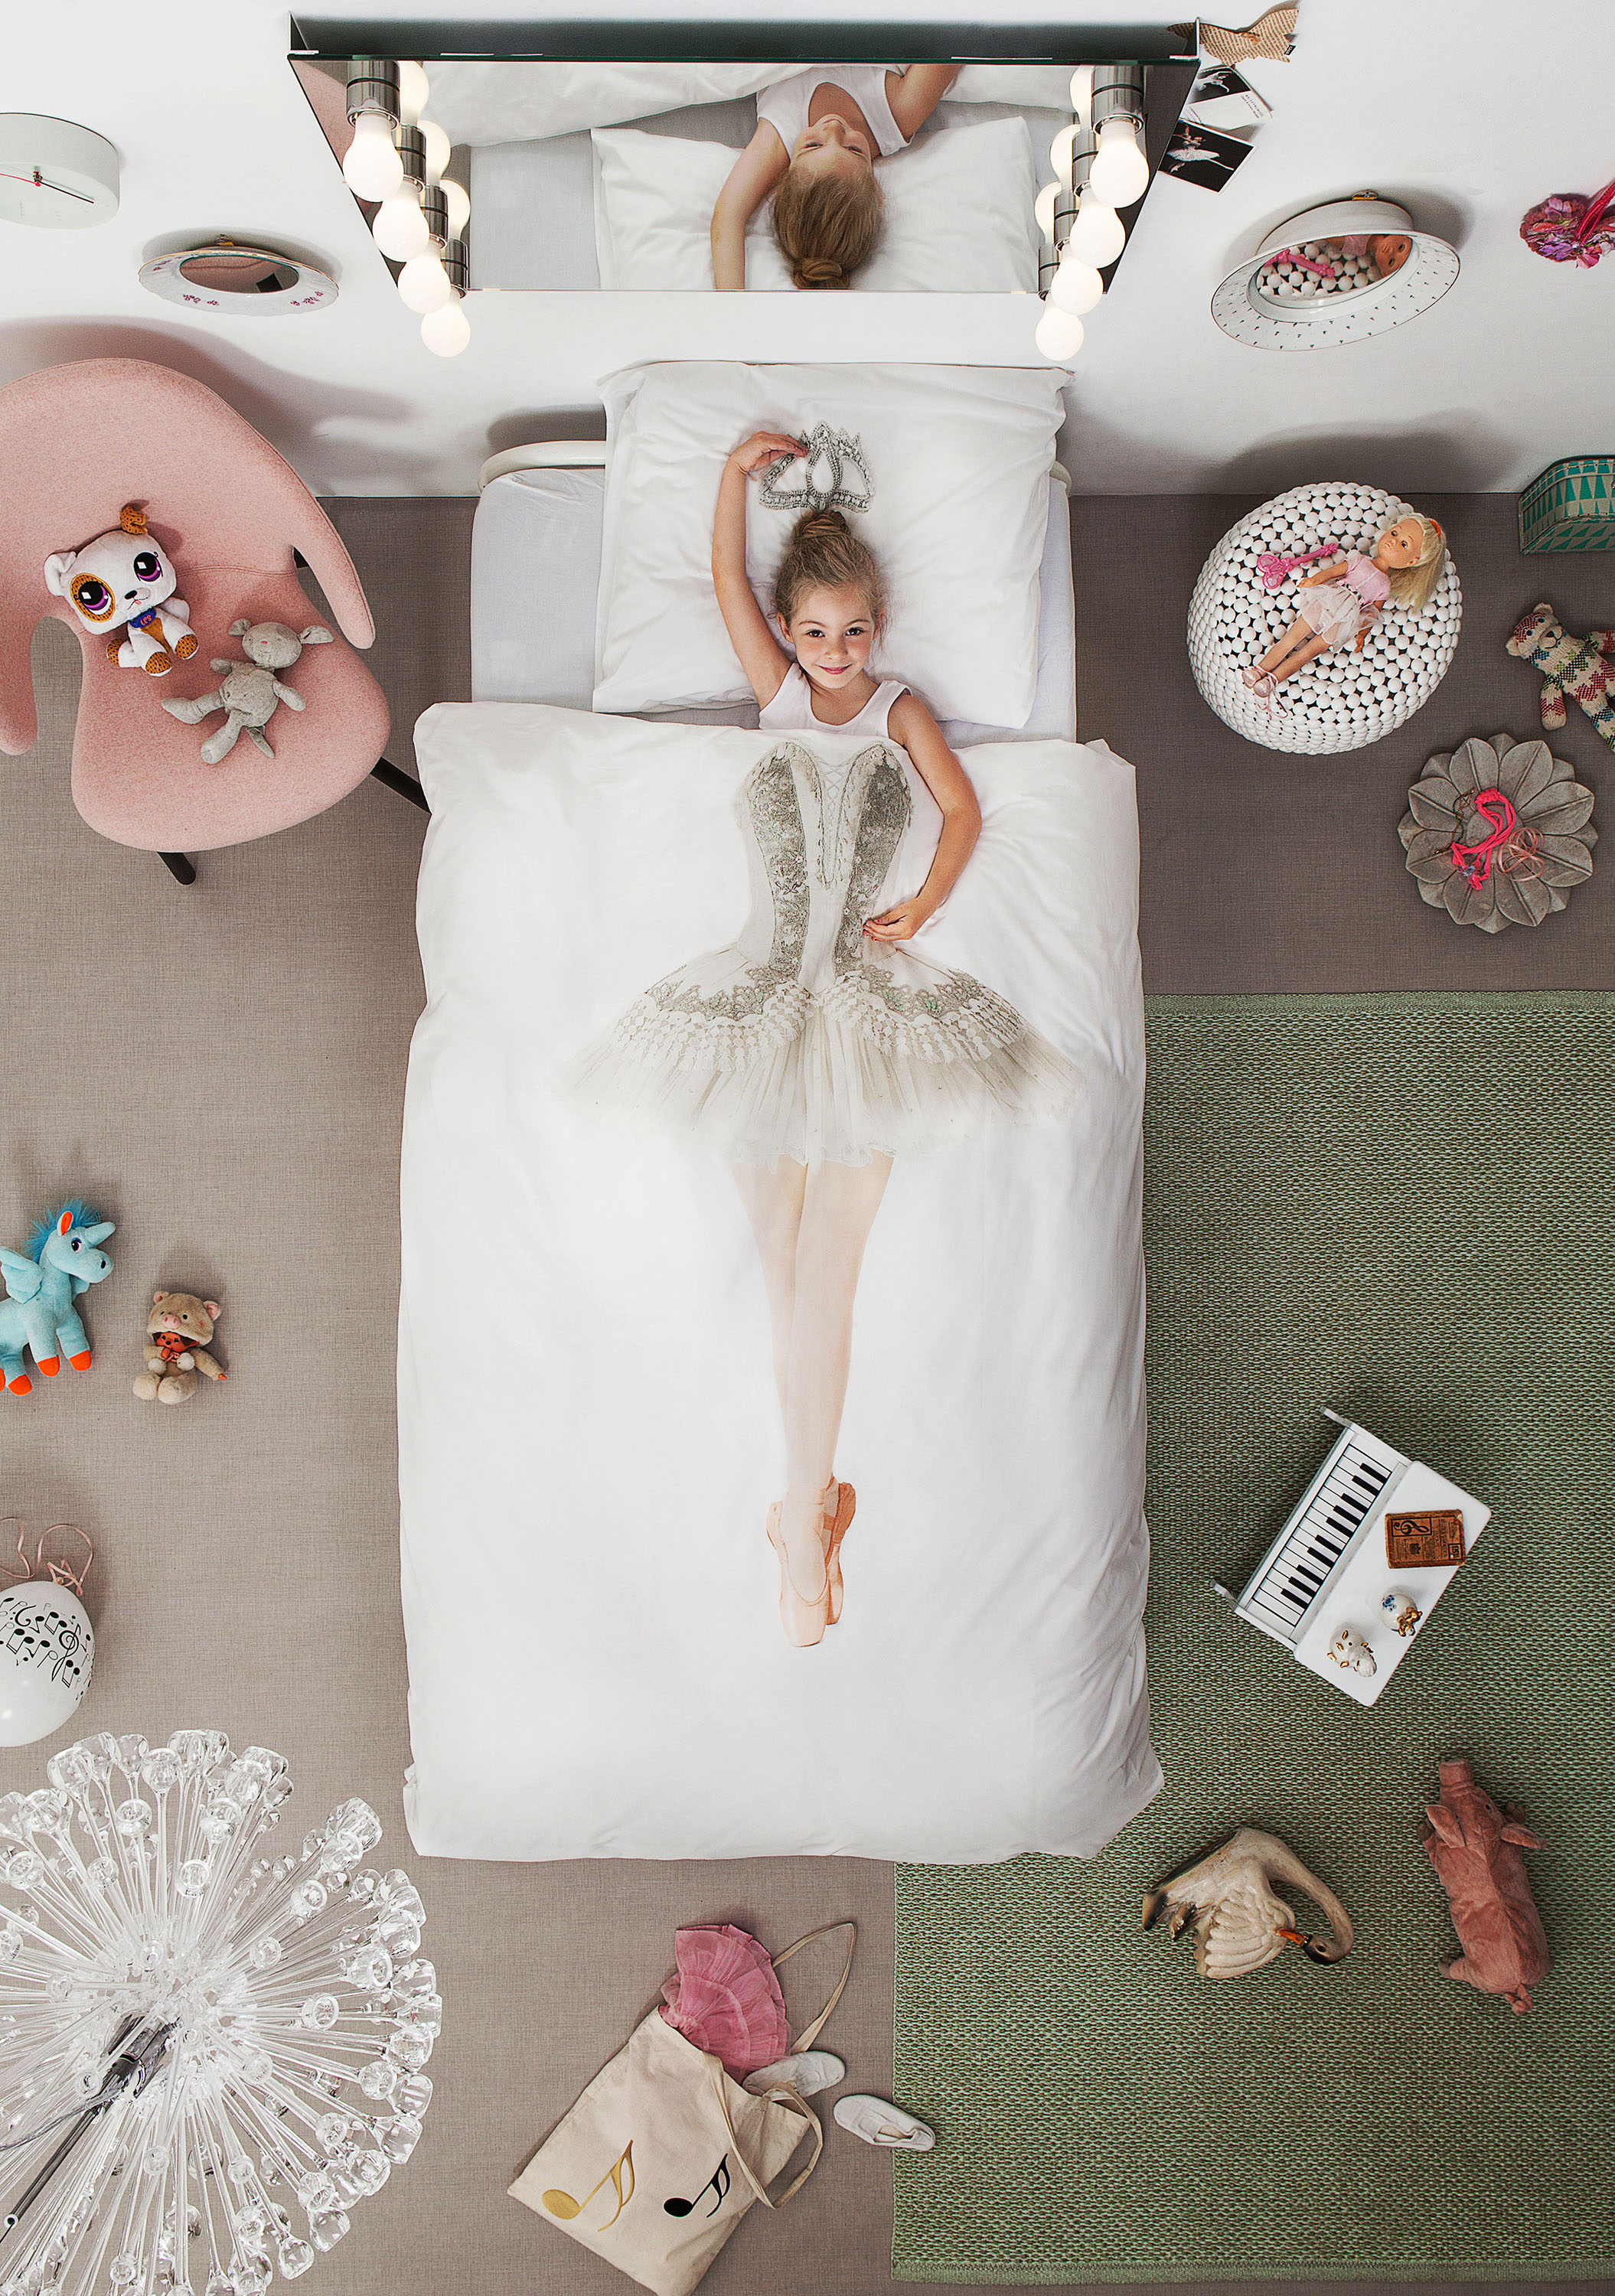 ballerina duvet set for girls bedroom pure cotton bedding